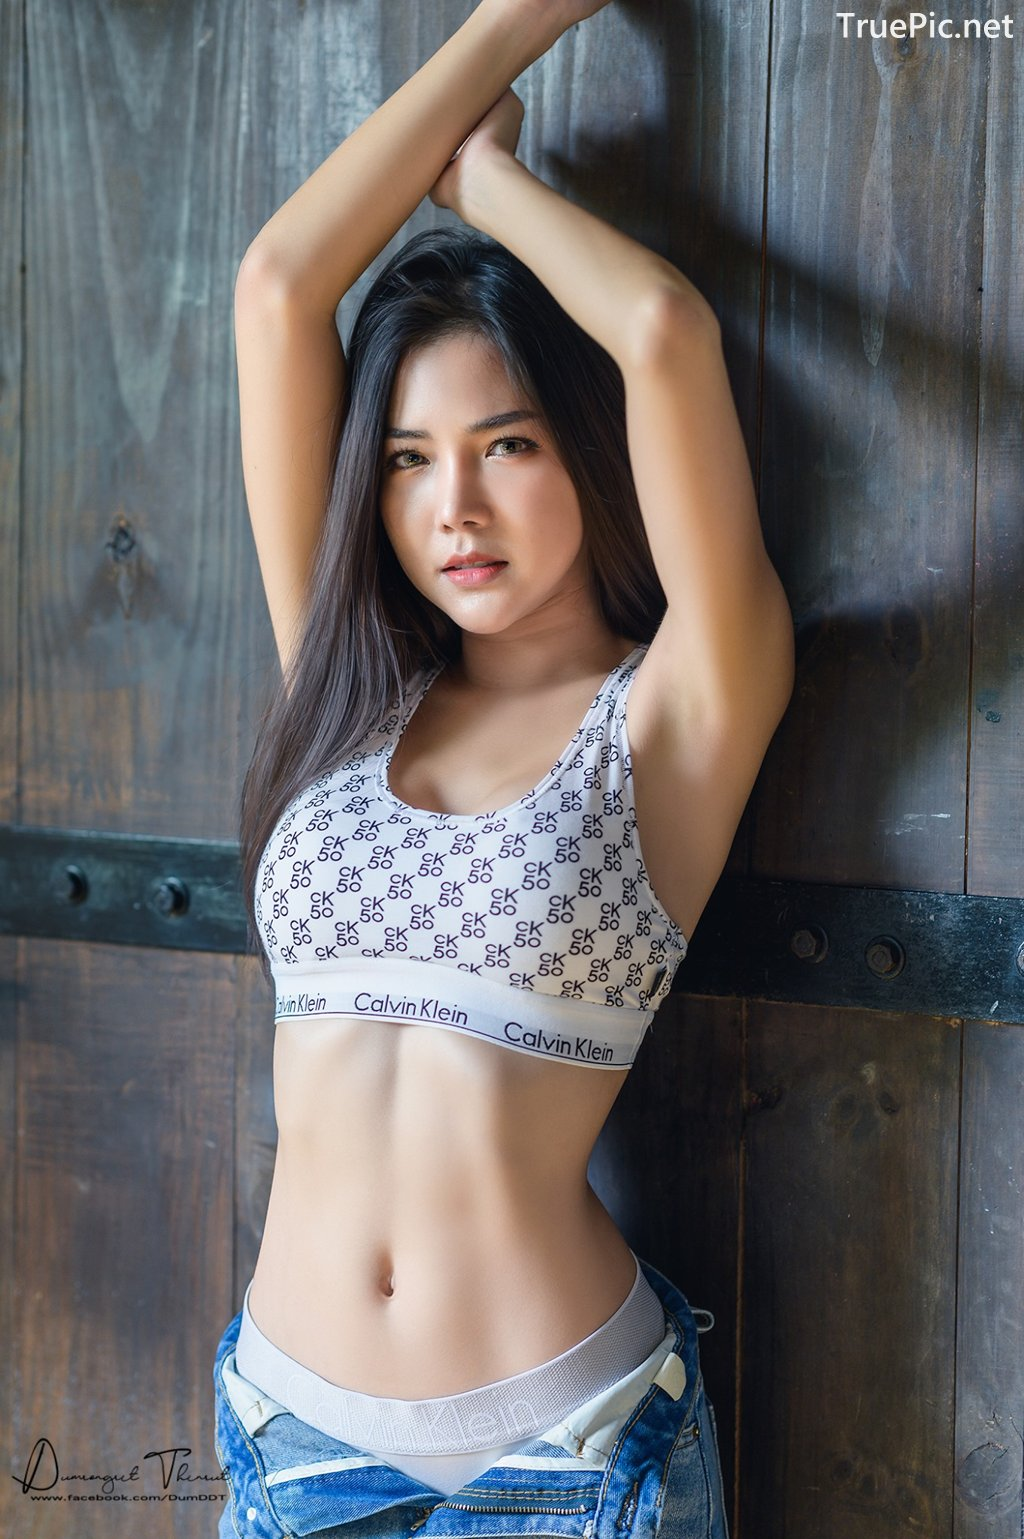 Image-Hot-Girl-Thailand-Phitchamol-Srijantanet-Sexy-Beauty-With-Sport-Bra-and-Monokini-TruePic.net- Picture-3